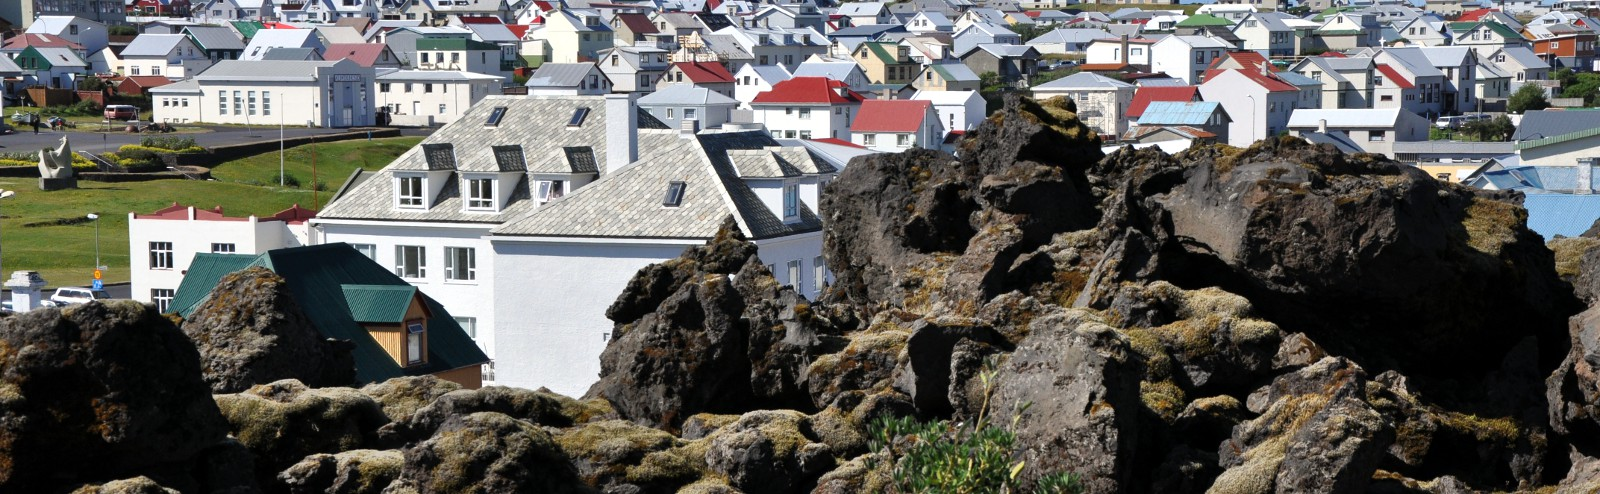 vestmannaeyjar city view with lava